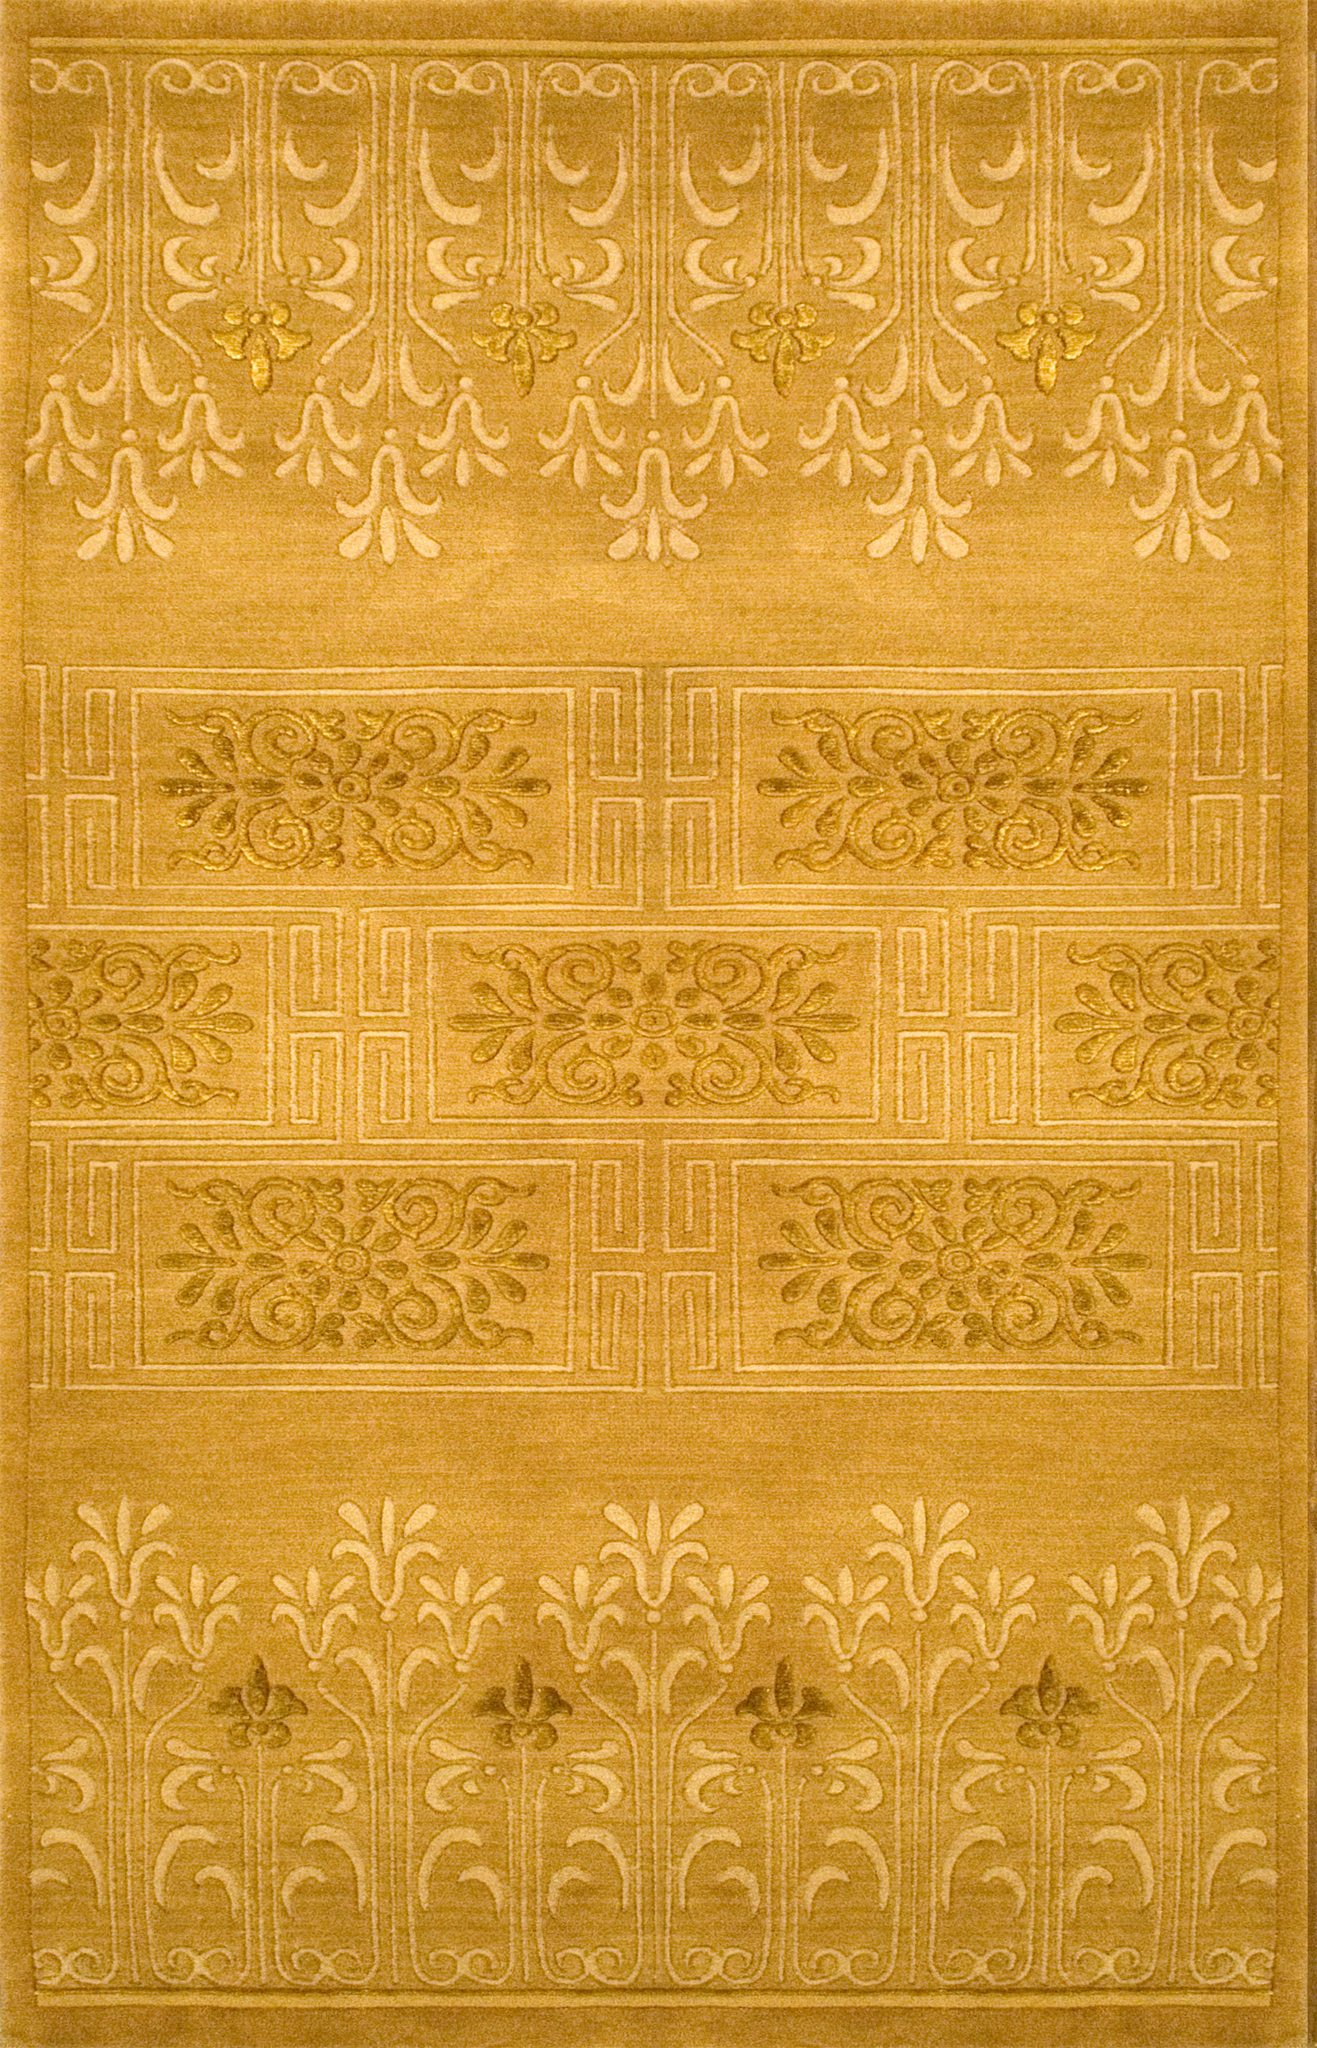 Golden Fields Rug.jpg